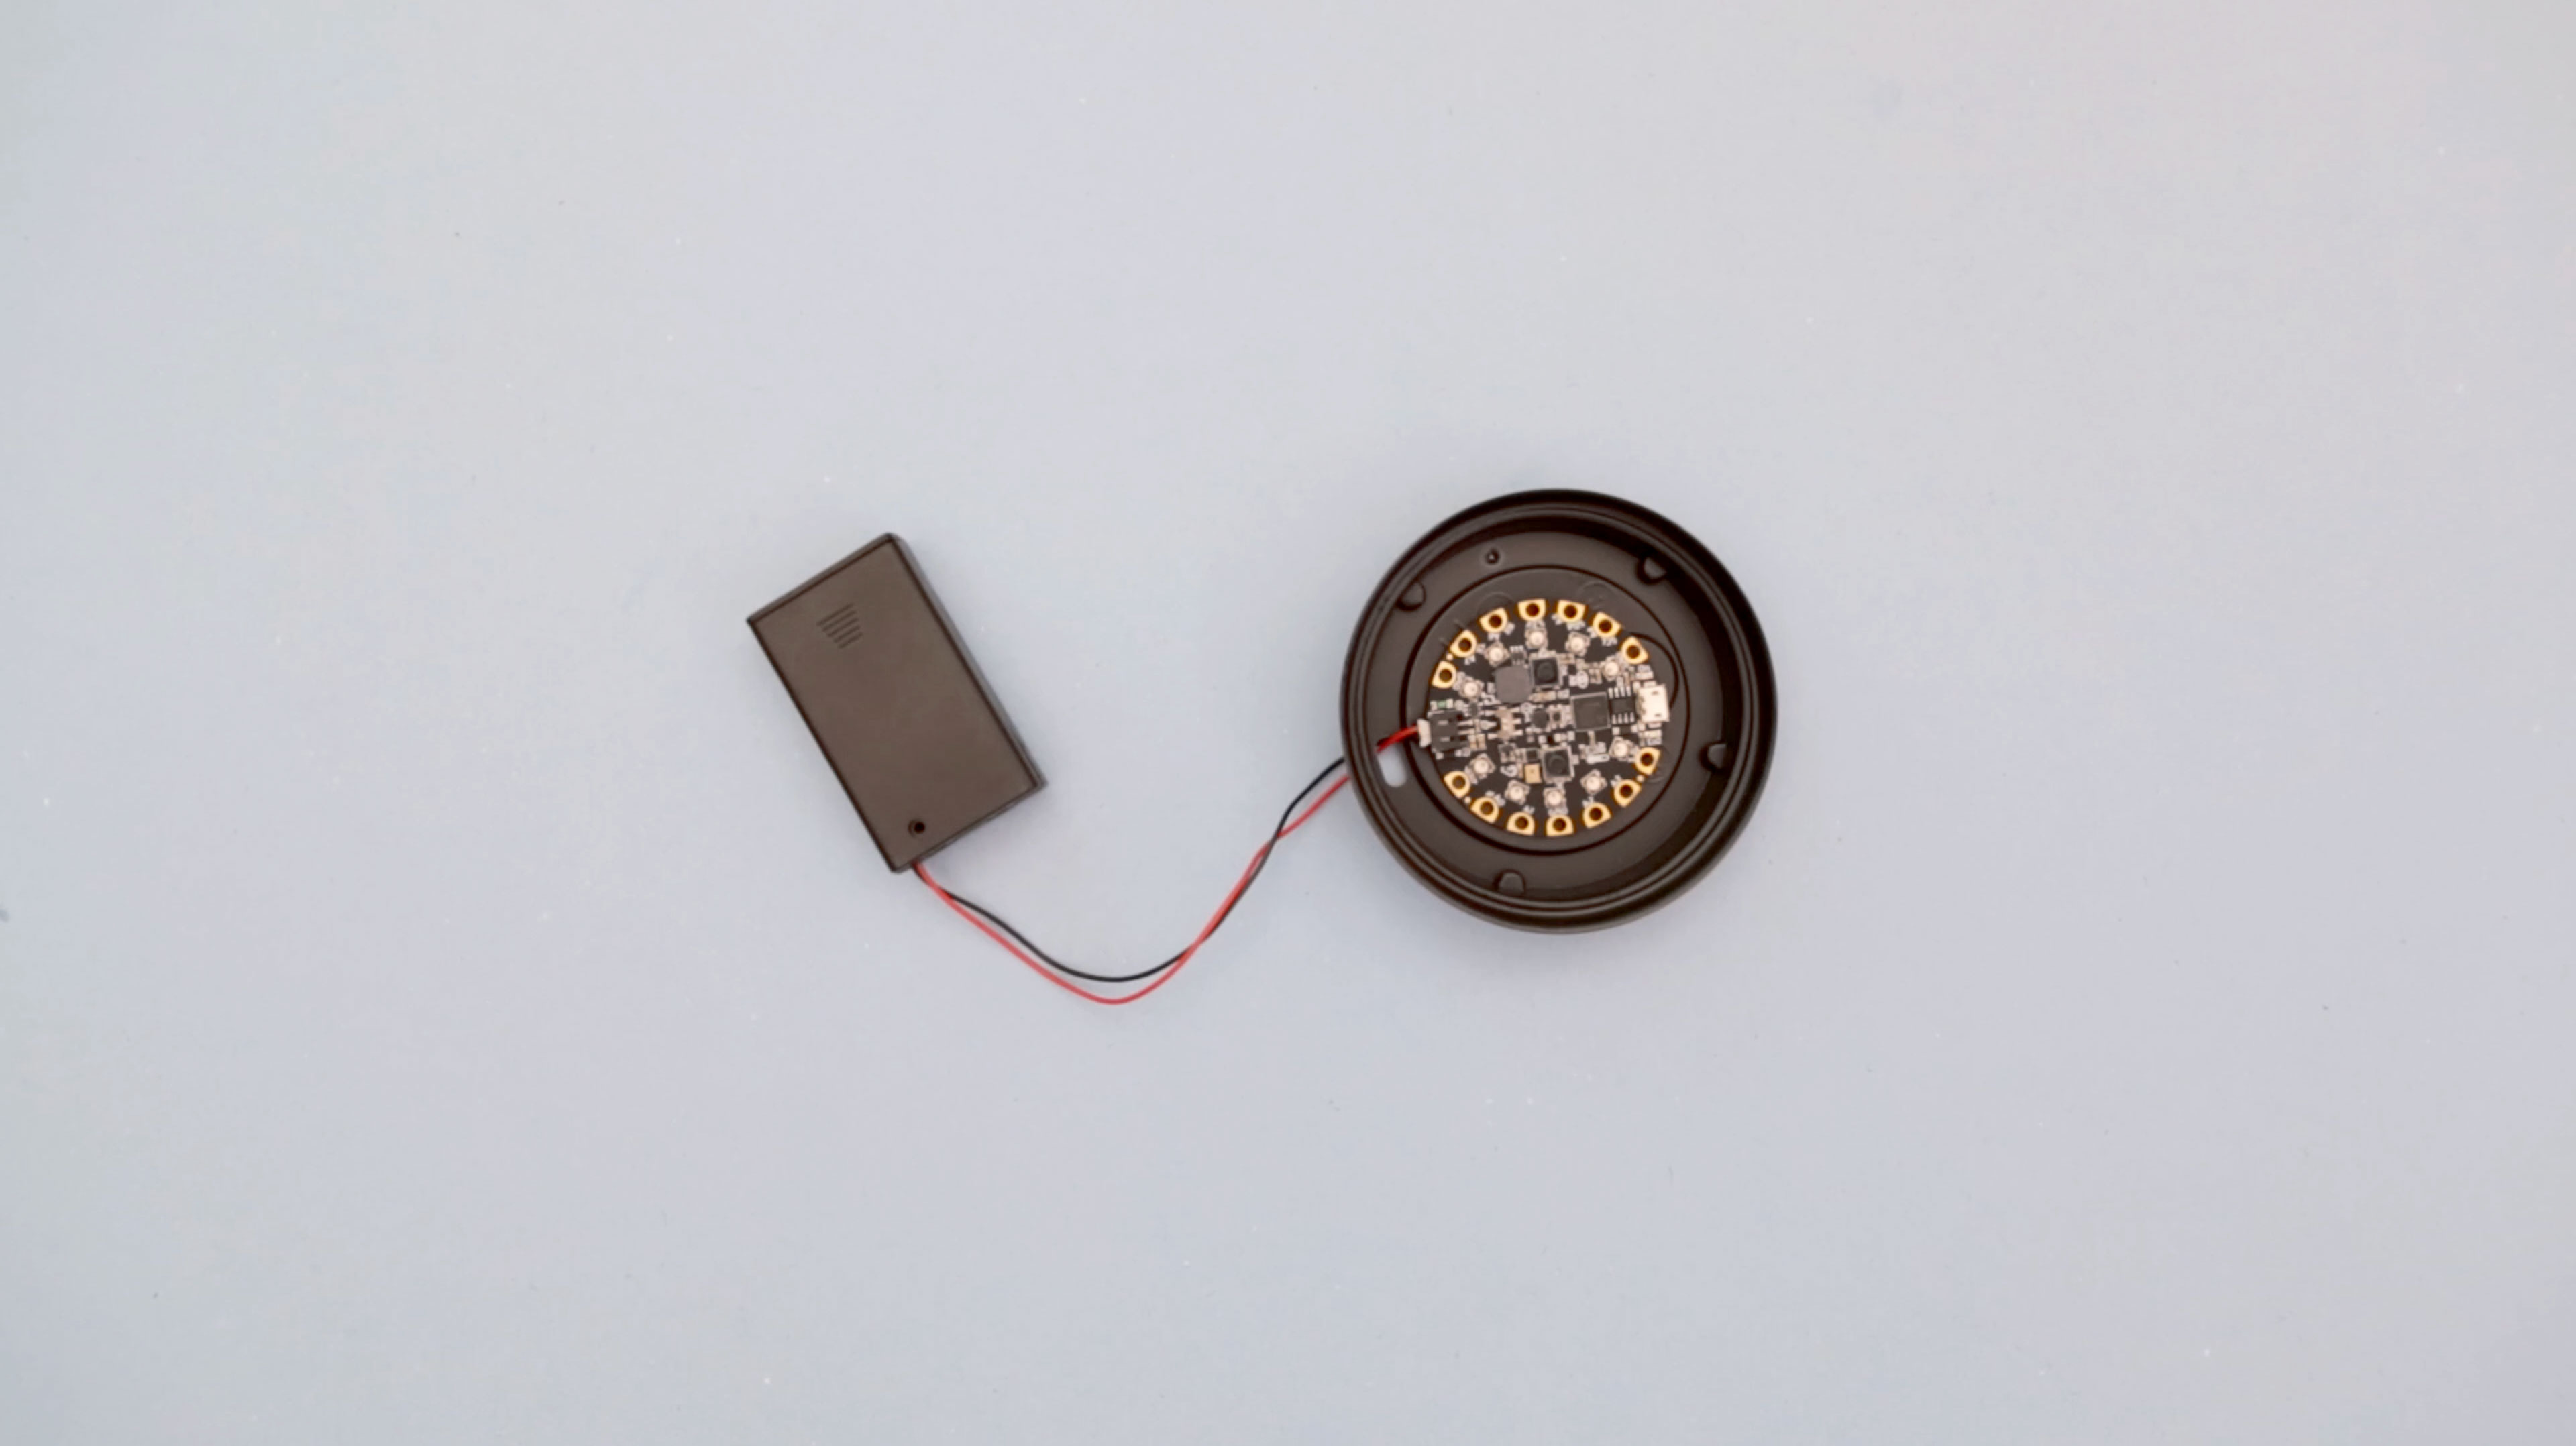 circuit_playground_lid-battery-attached.jpg